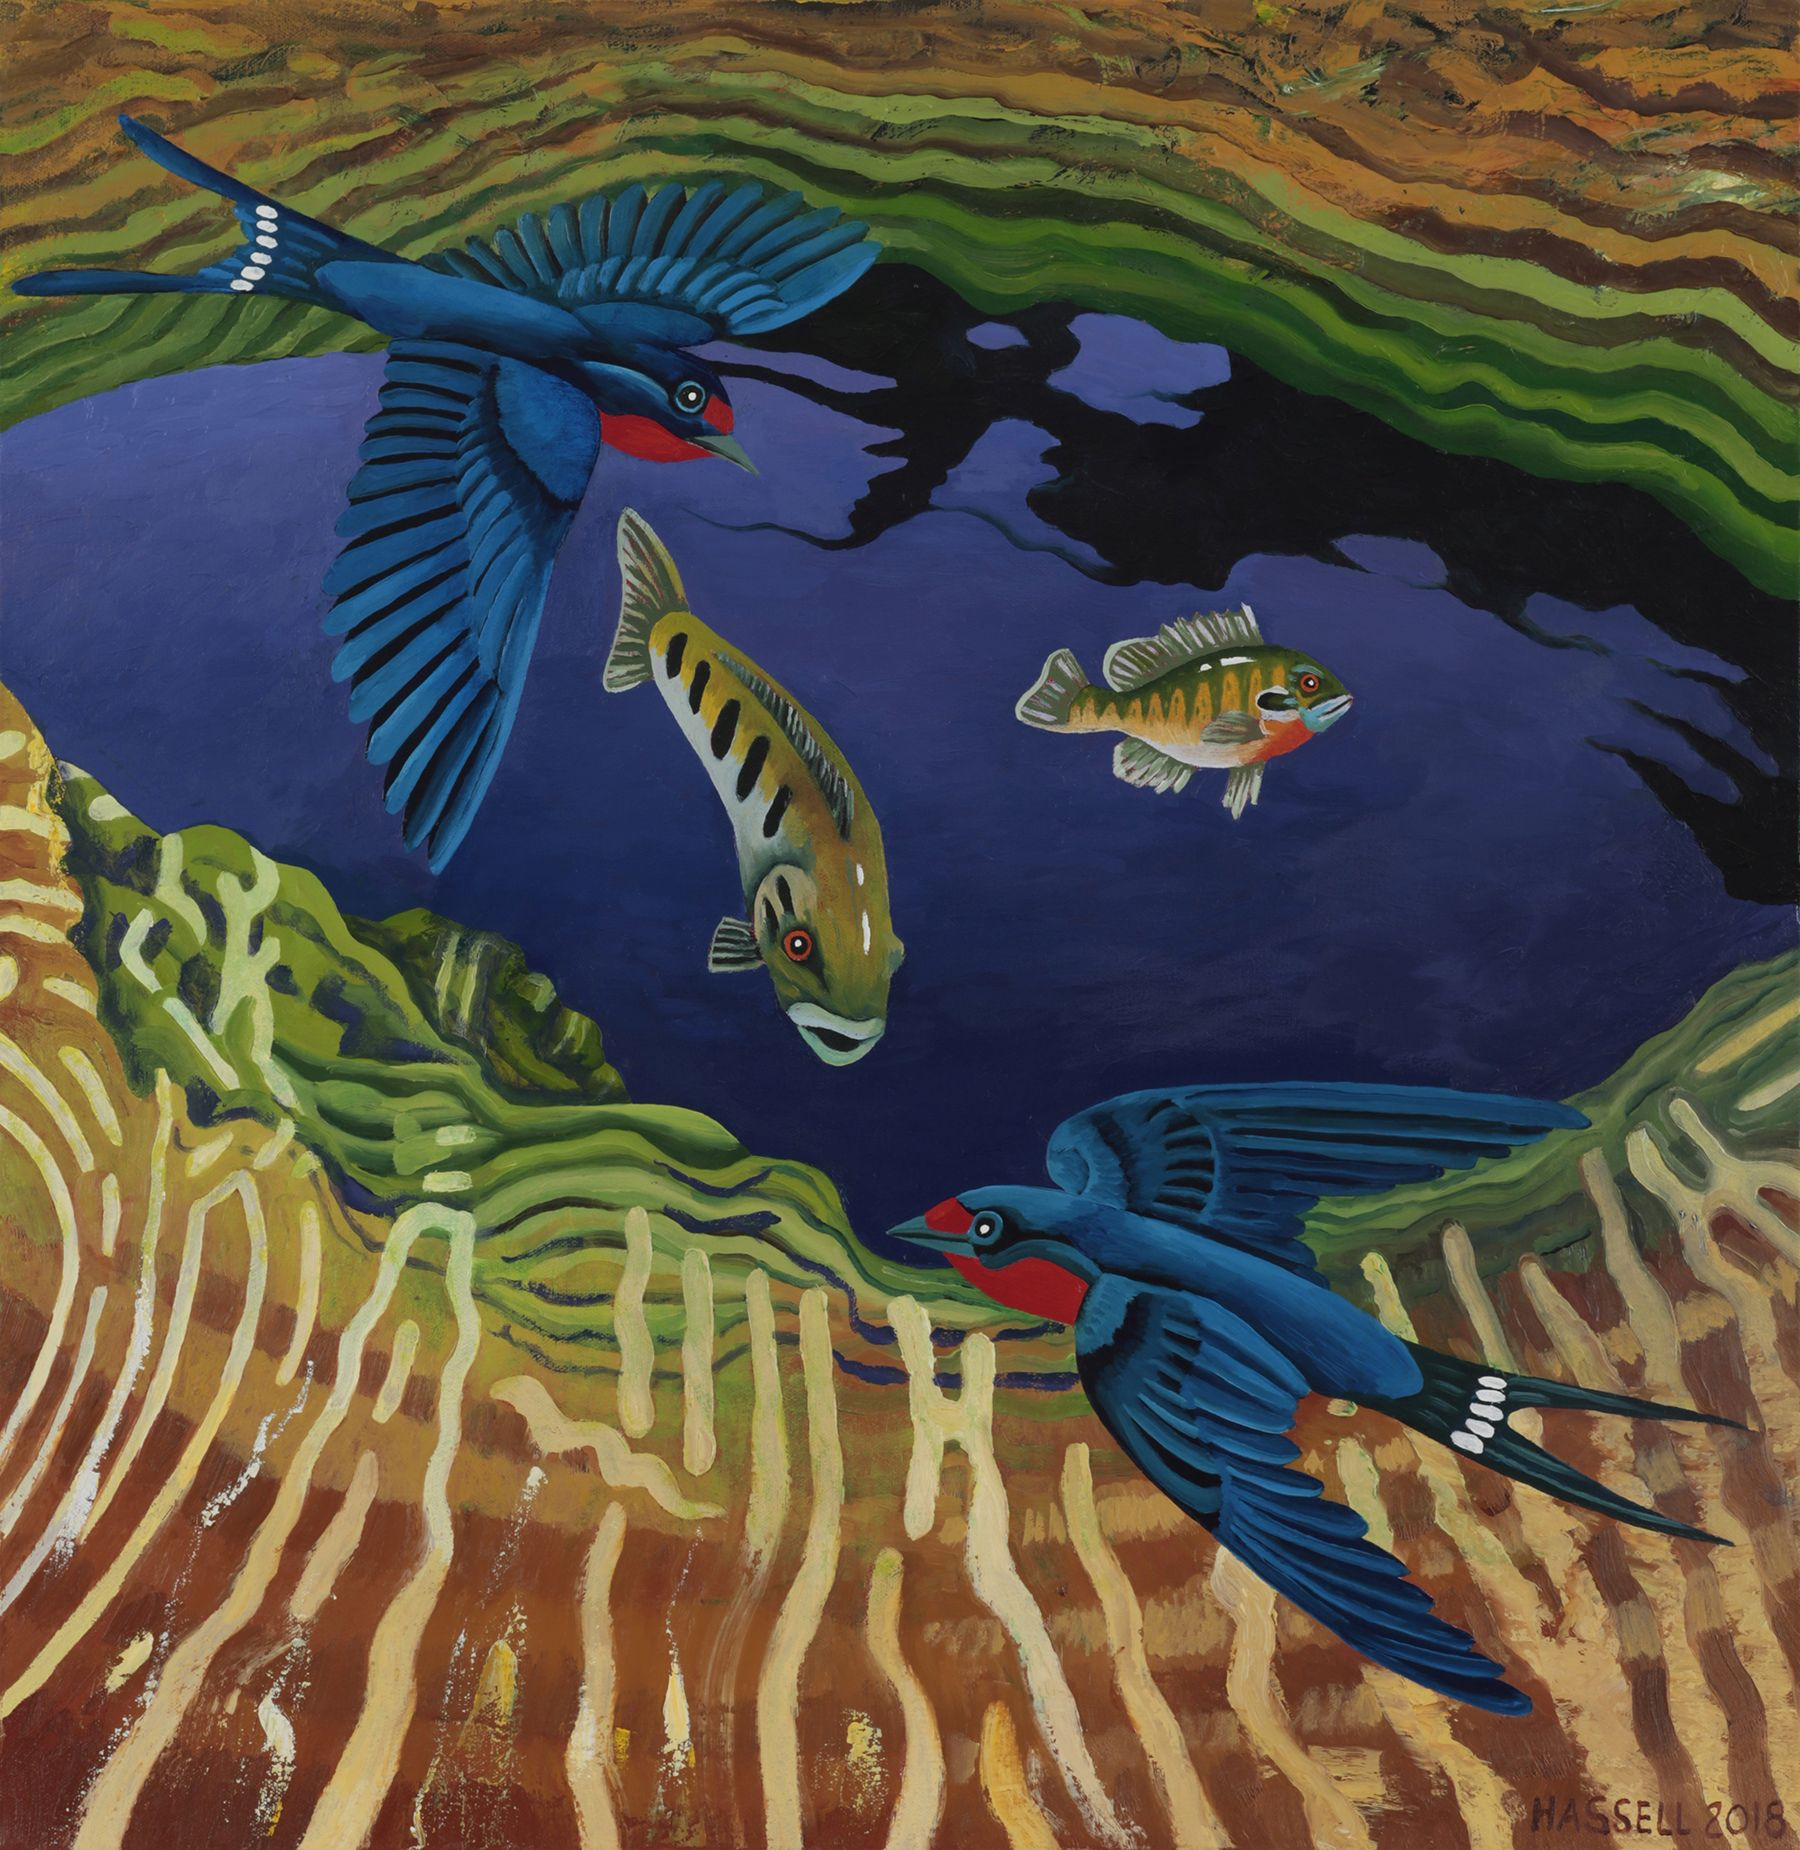 """Jacob's Well with Barn Swallows"" by Billy Hassell"